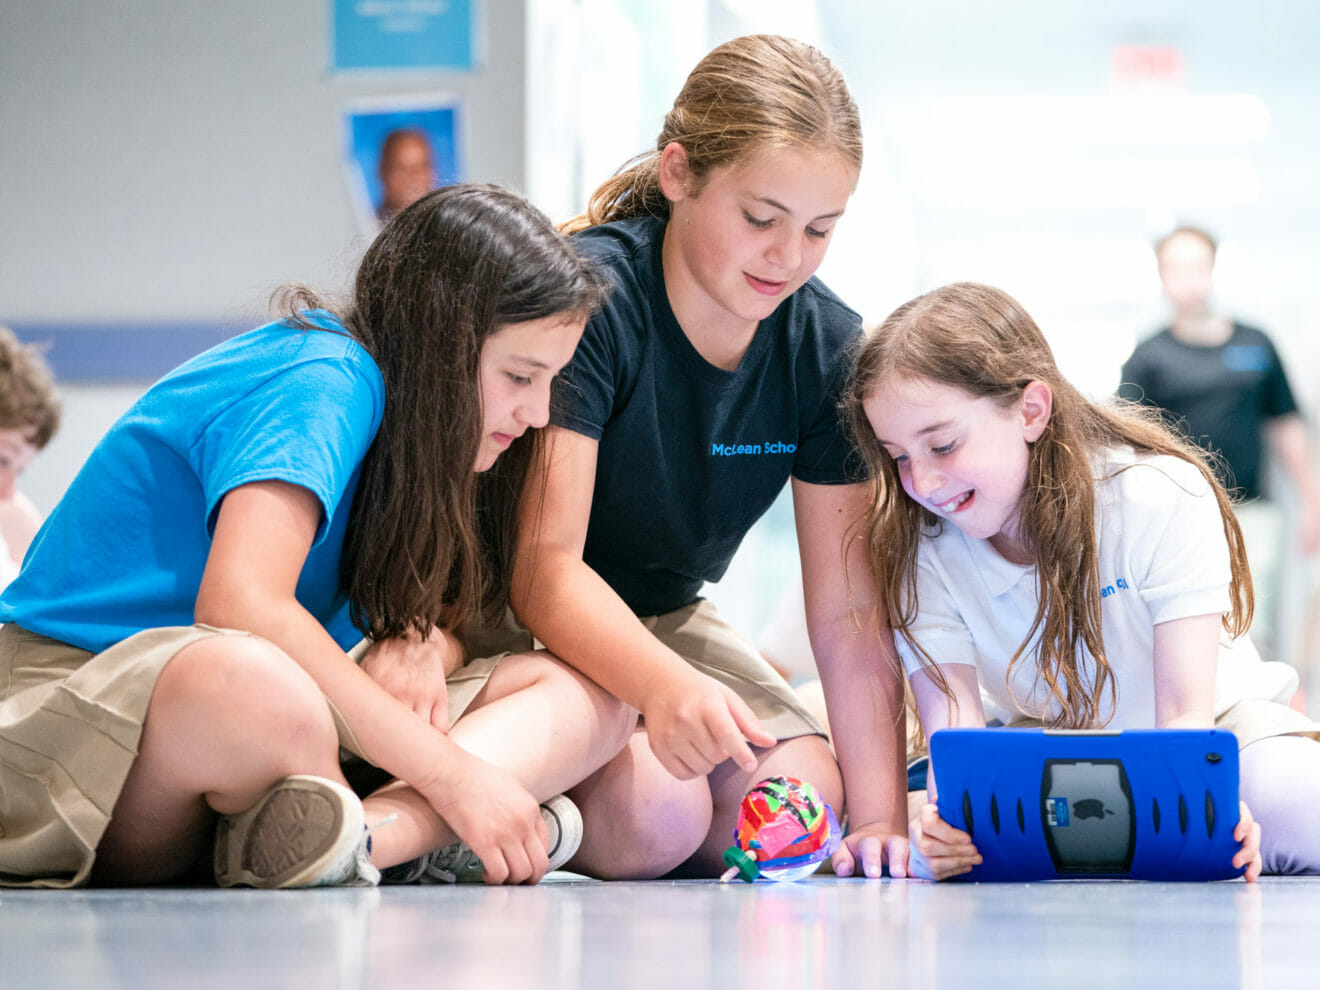 Three girls work on project in school hall